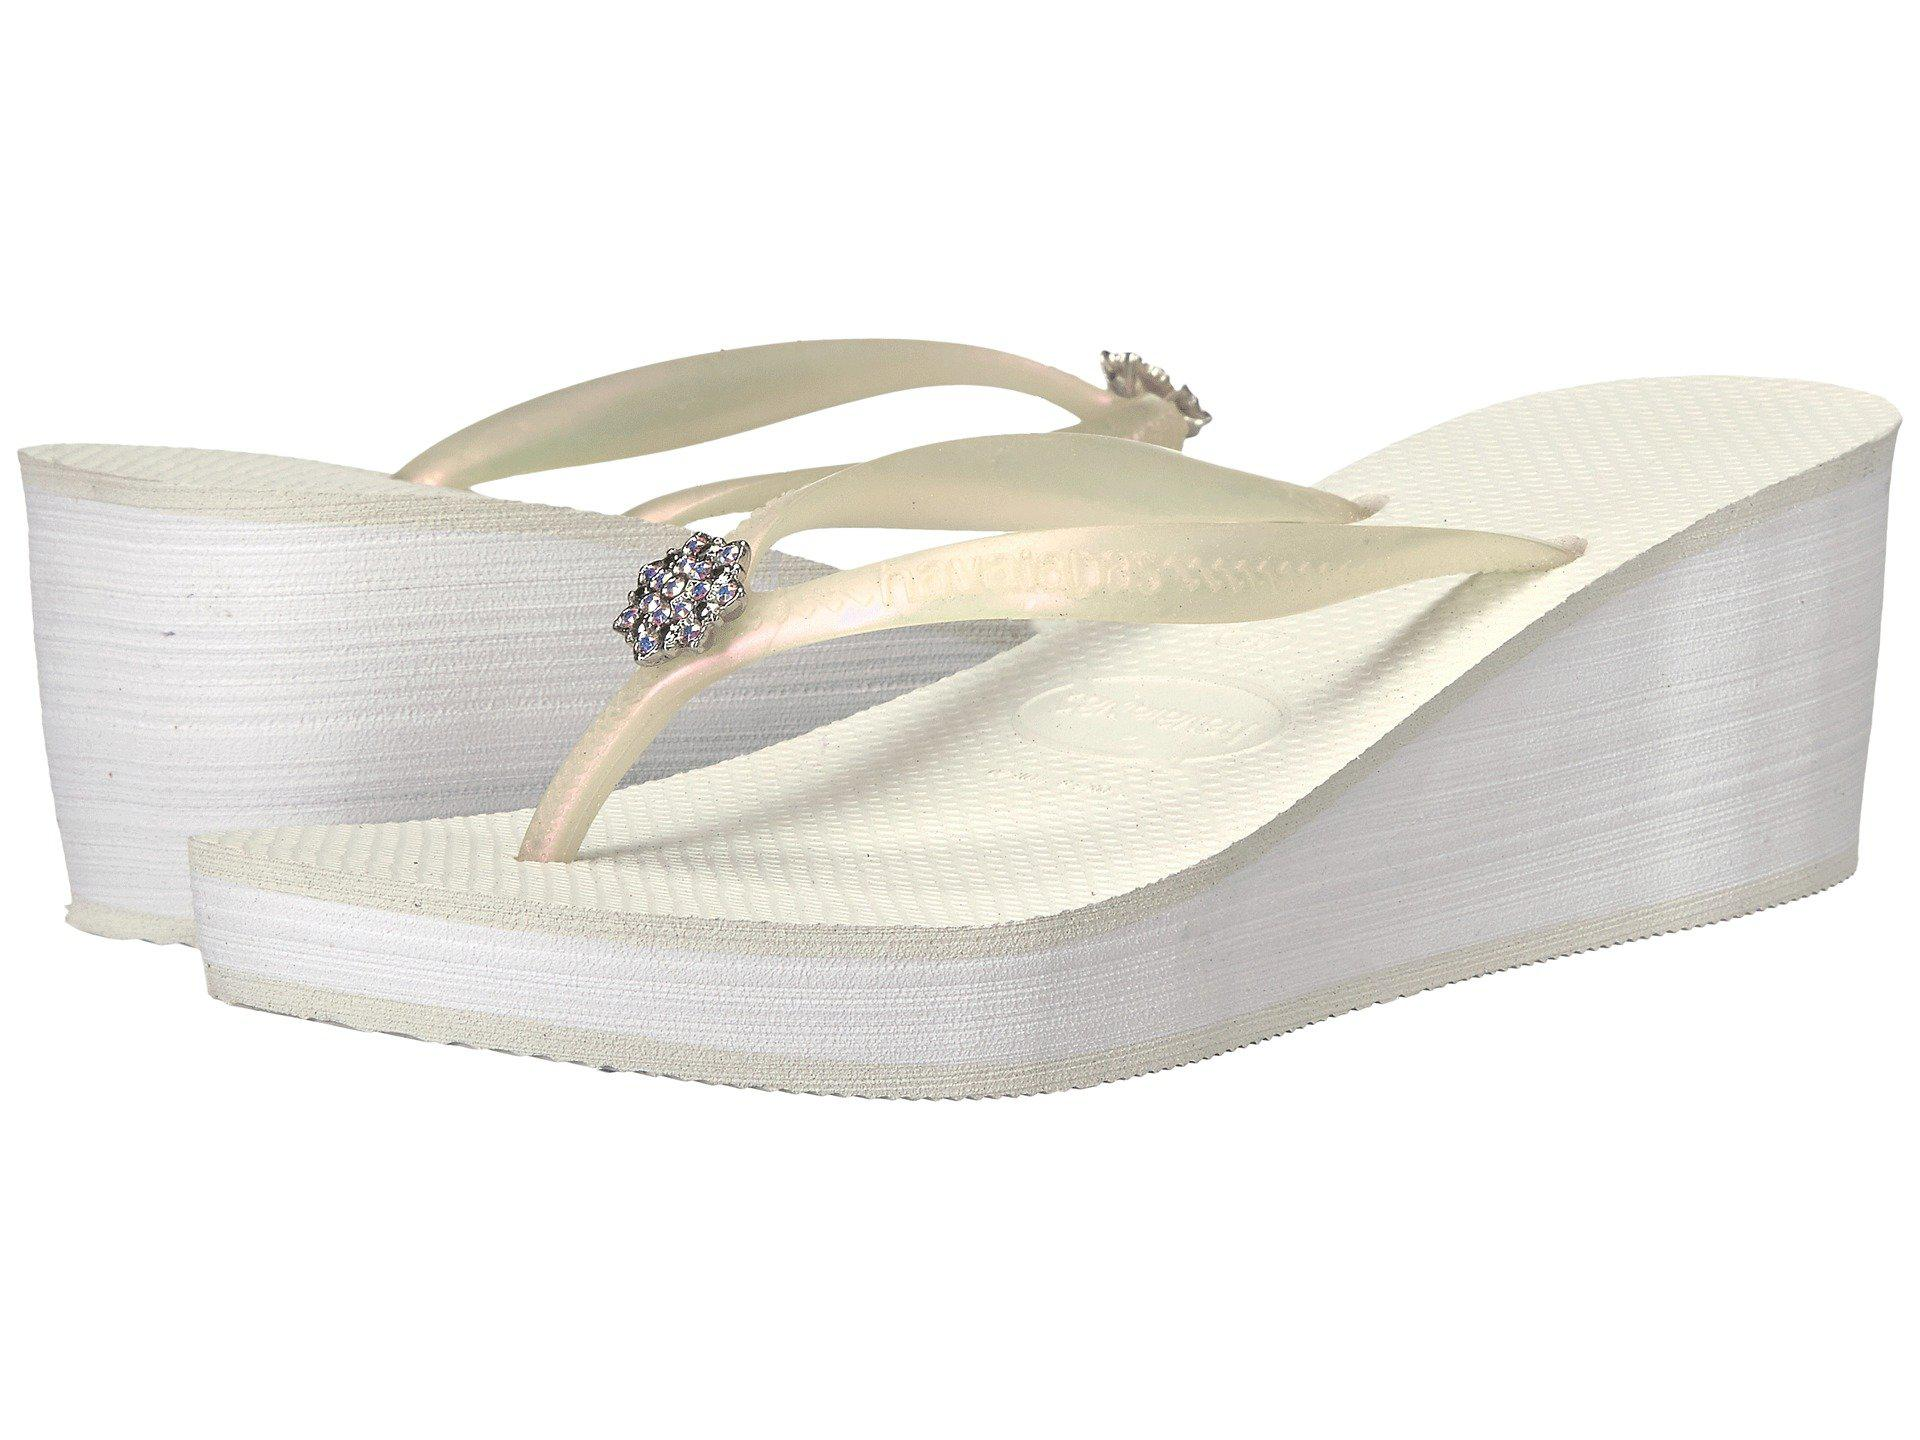 ad37ec94a87d1d Lyst - Havaianas High Fashion Poem Flip-flops in White